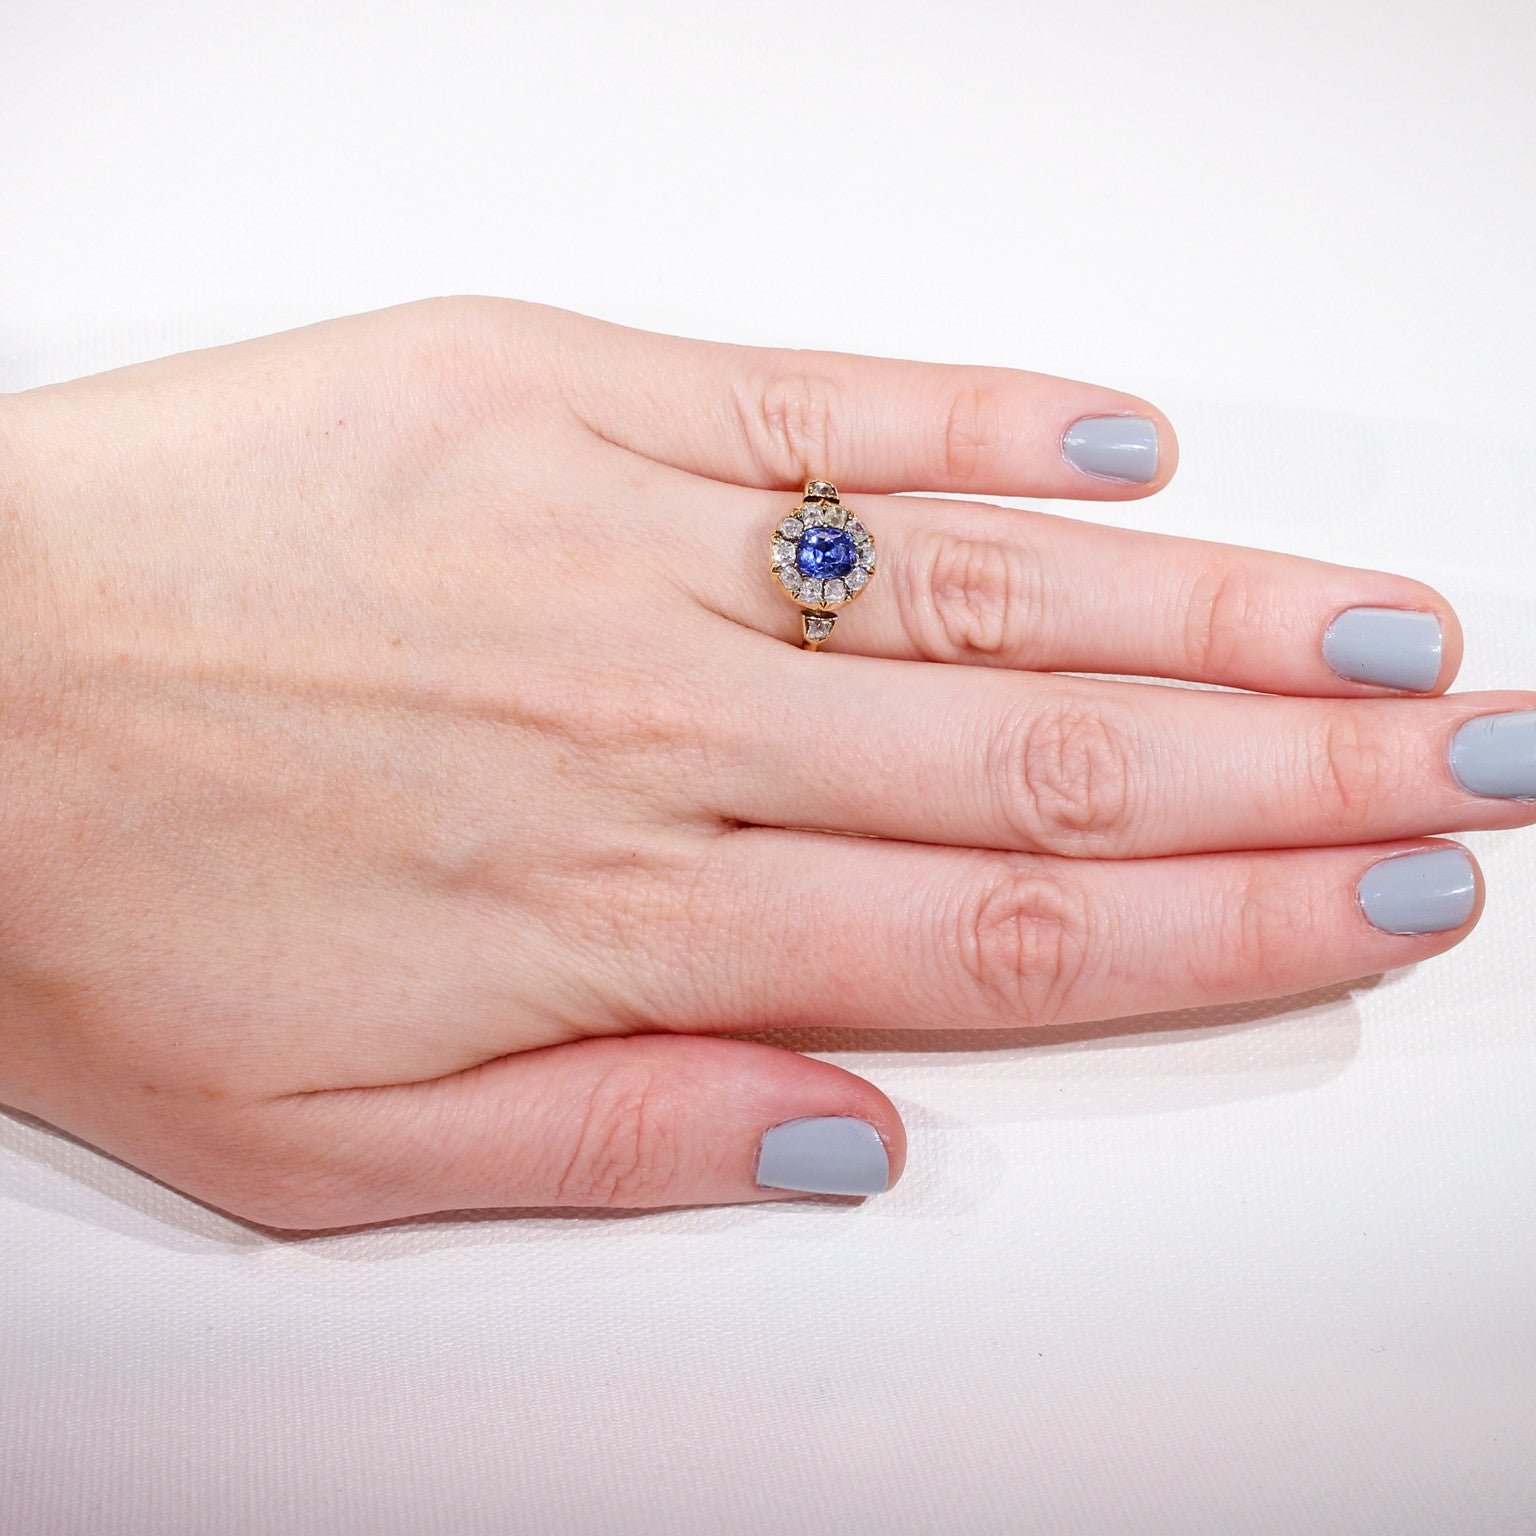 sapphire - Victoria Sterling Antique Jewelry